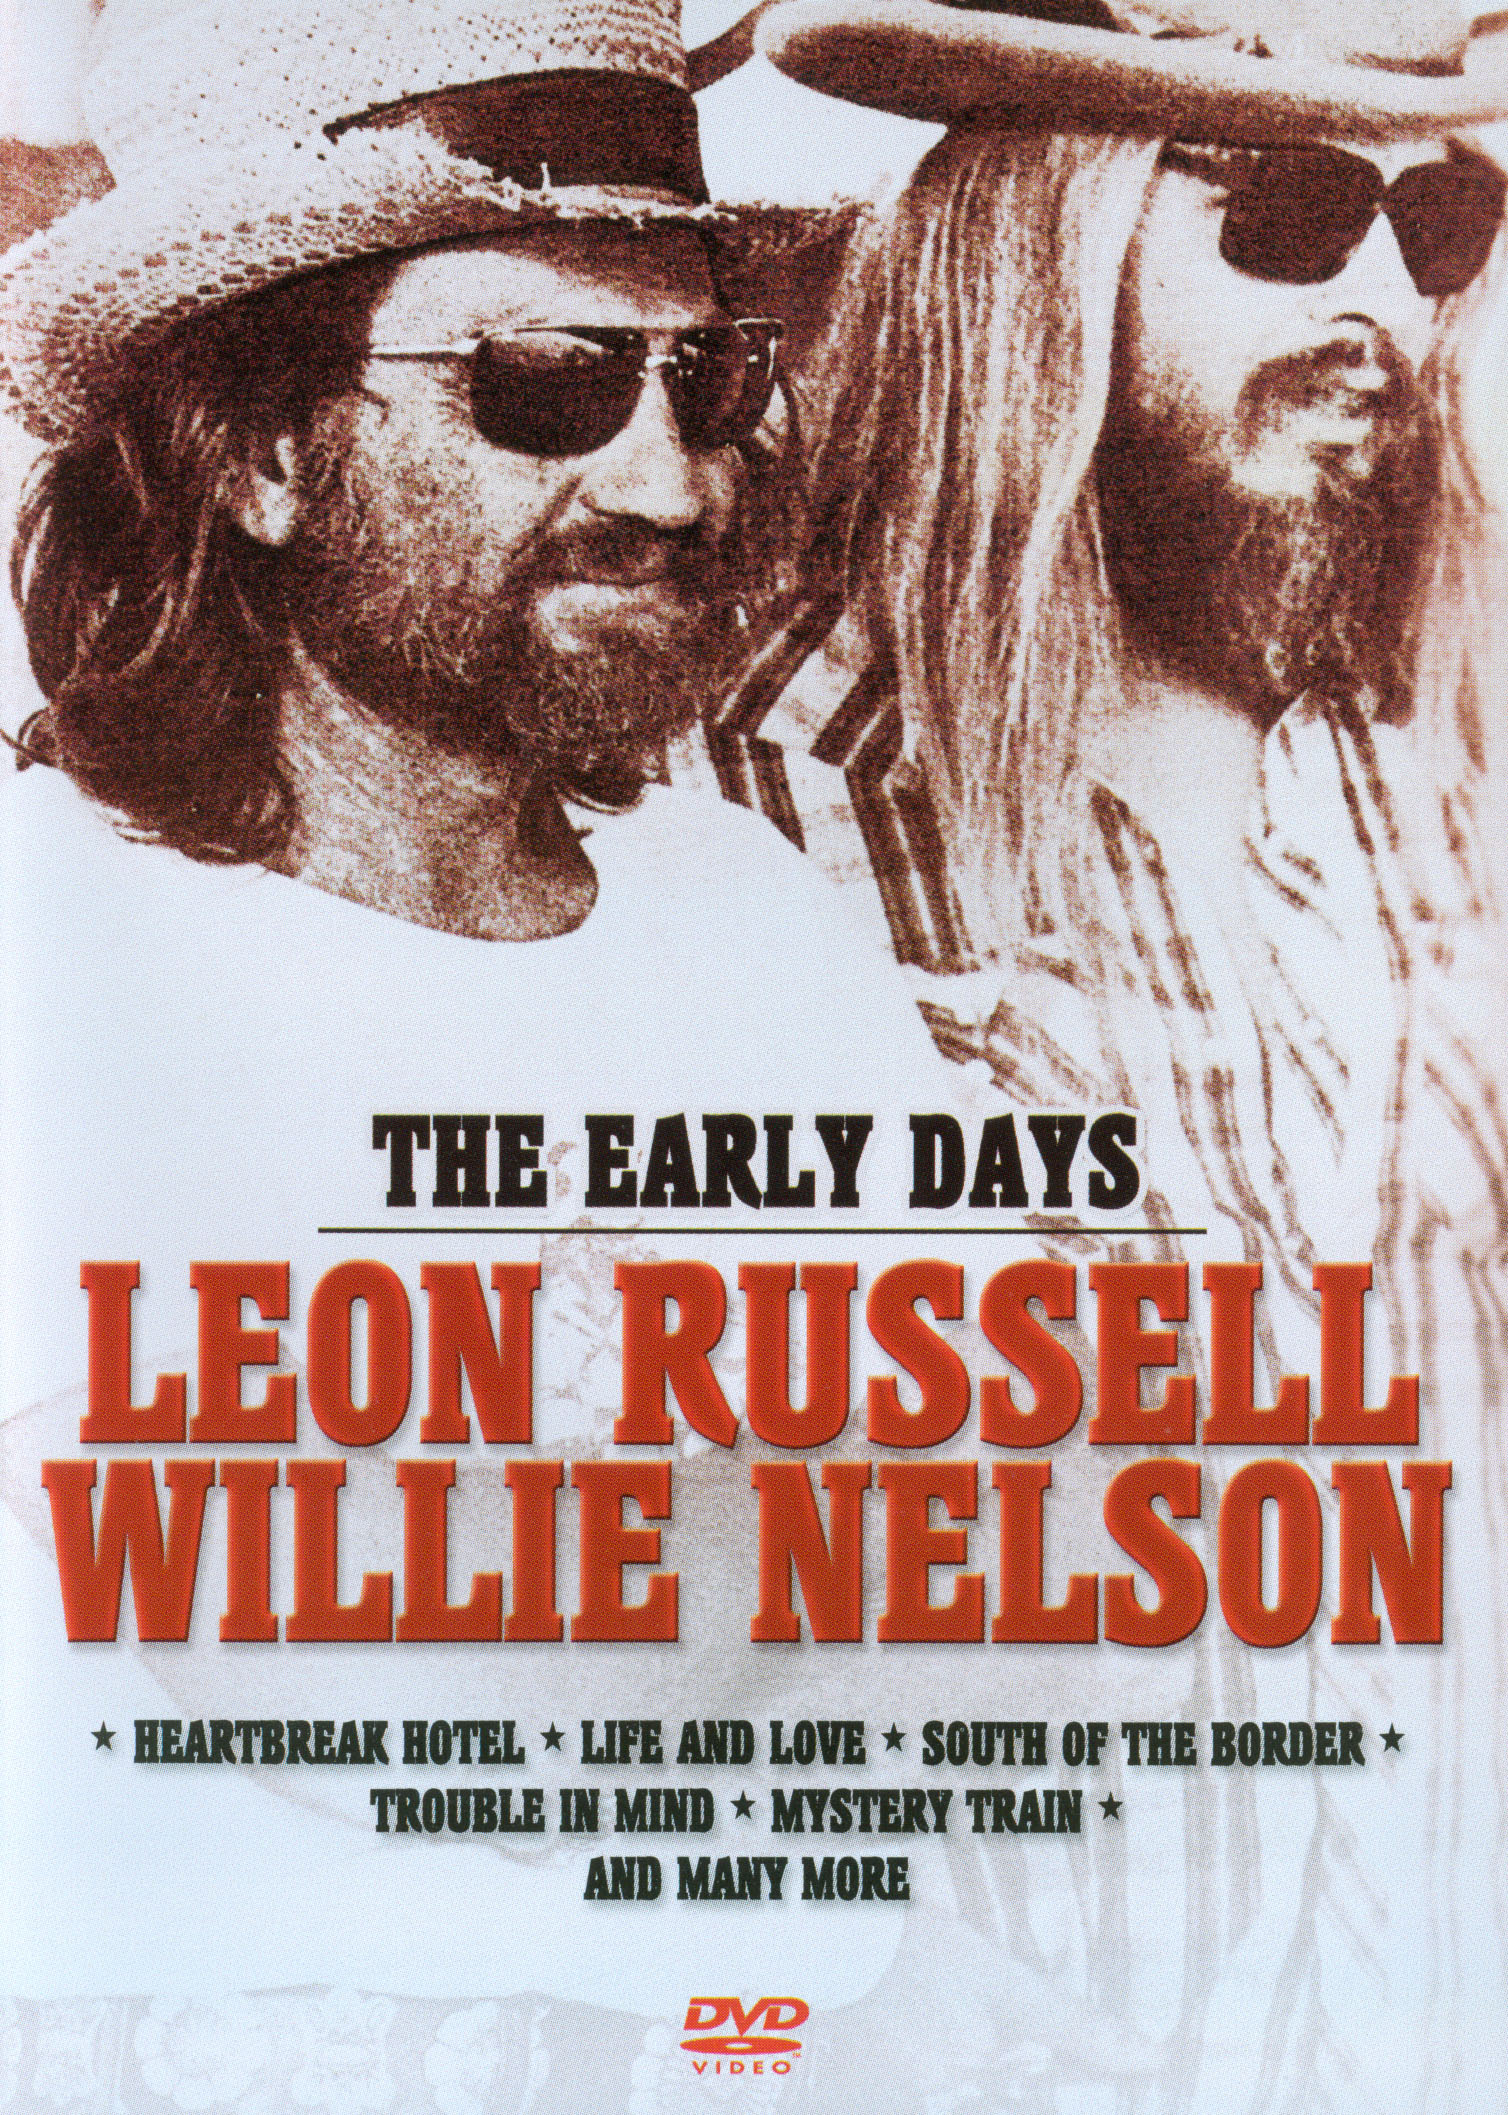 Leon Russell/Willie Nelson: The Early Days